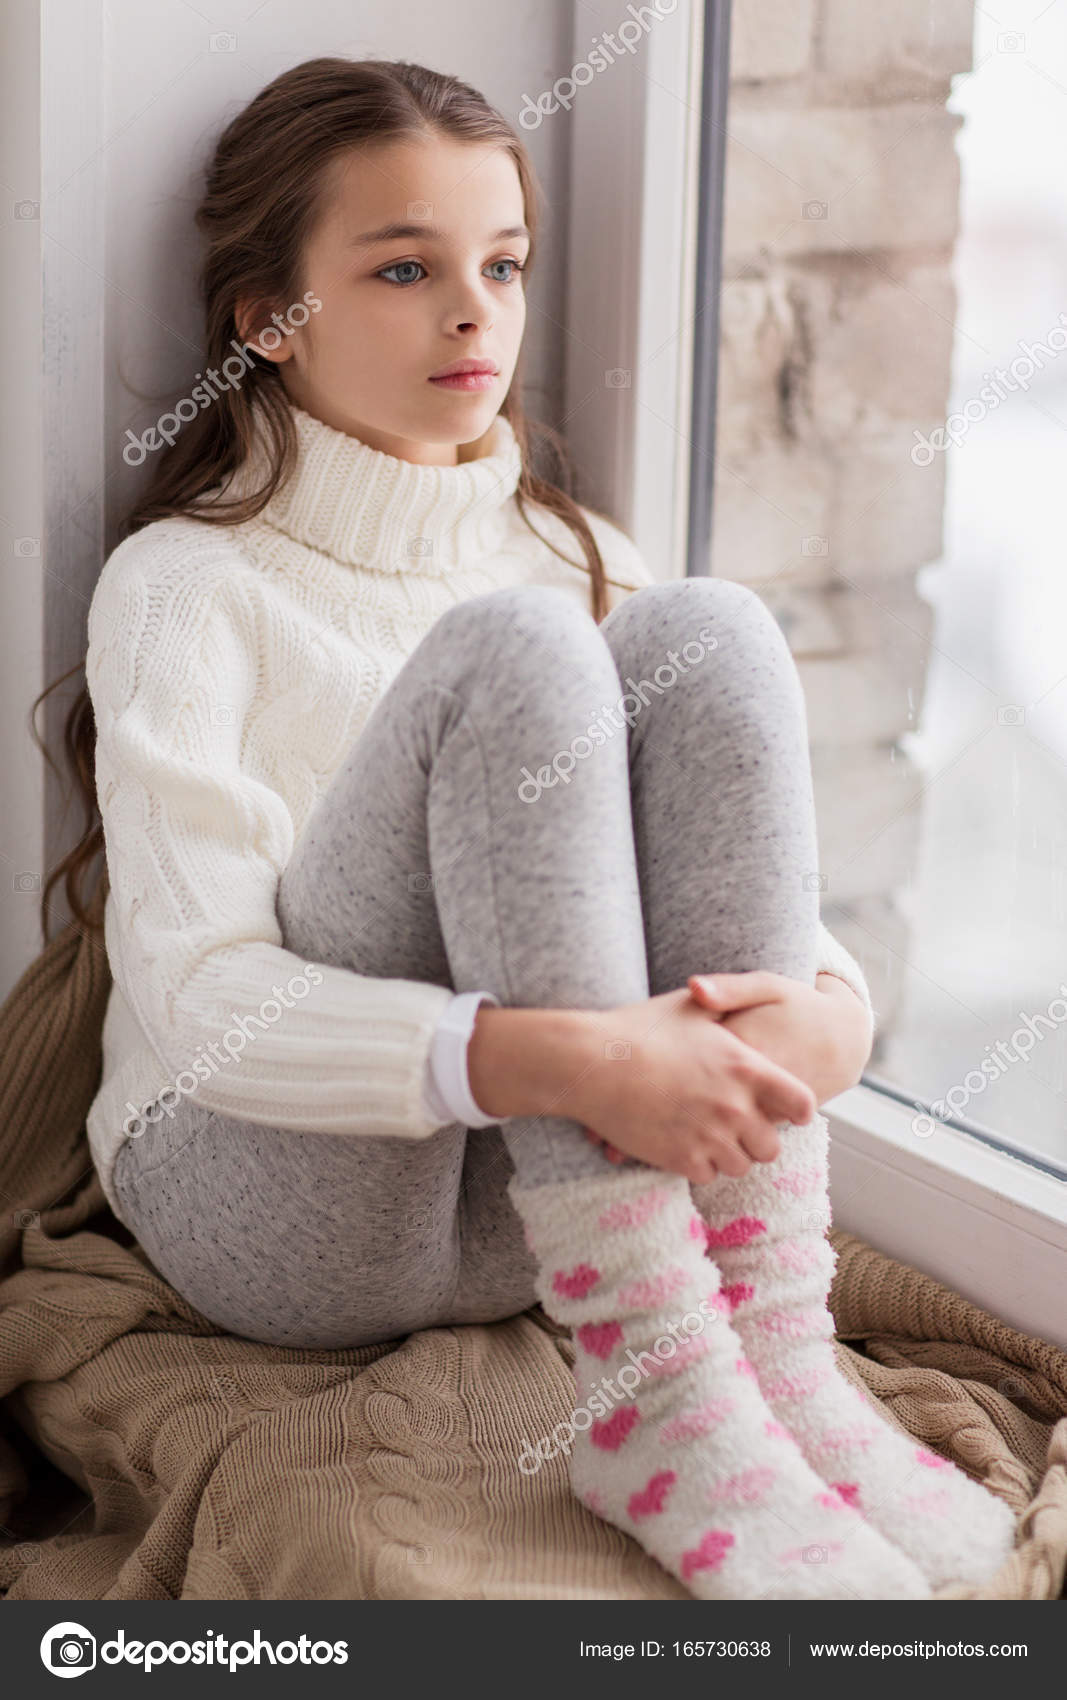 Sad Girl Sitting Alone Outside Stock Photos Sad Girl: Sad Girl Sitting On Sill At Home Window In Winter